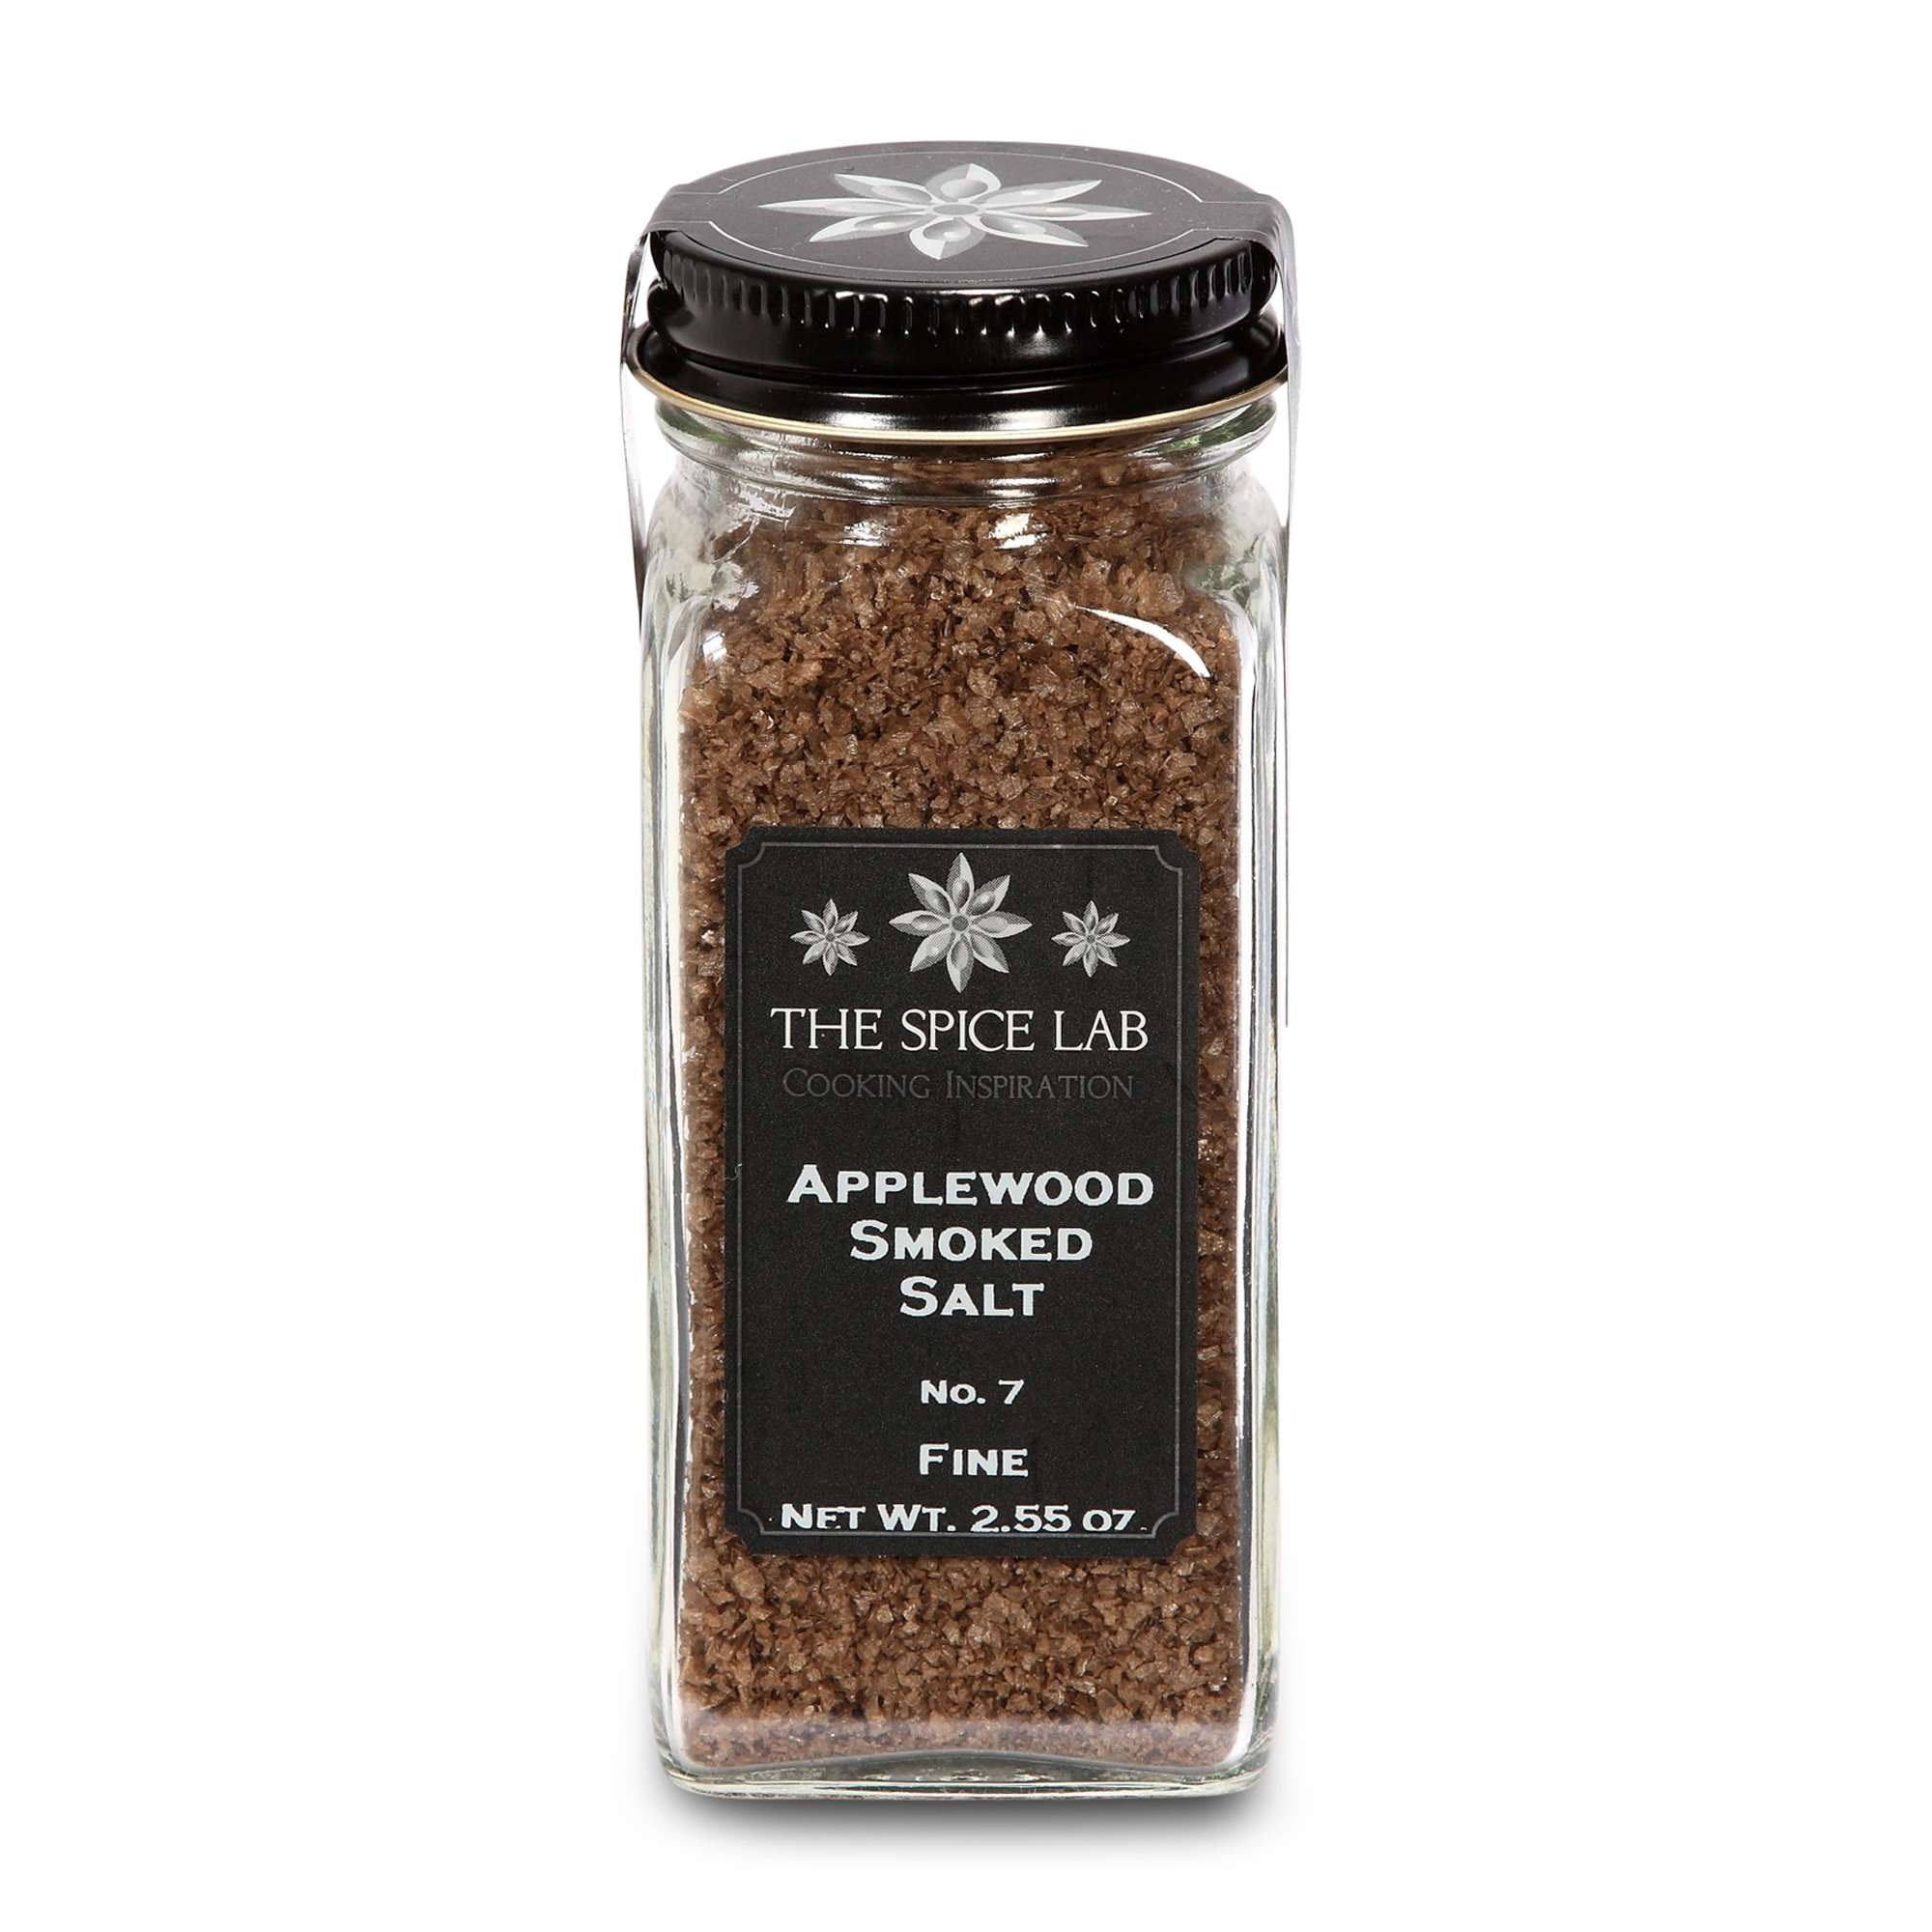 The Spice Lab Apple Wood Smoked Sea Salt - Great on the BBQ - Applewood Seasoning Blend - French Jar